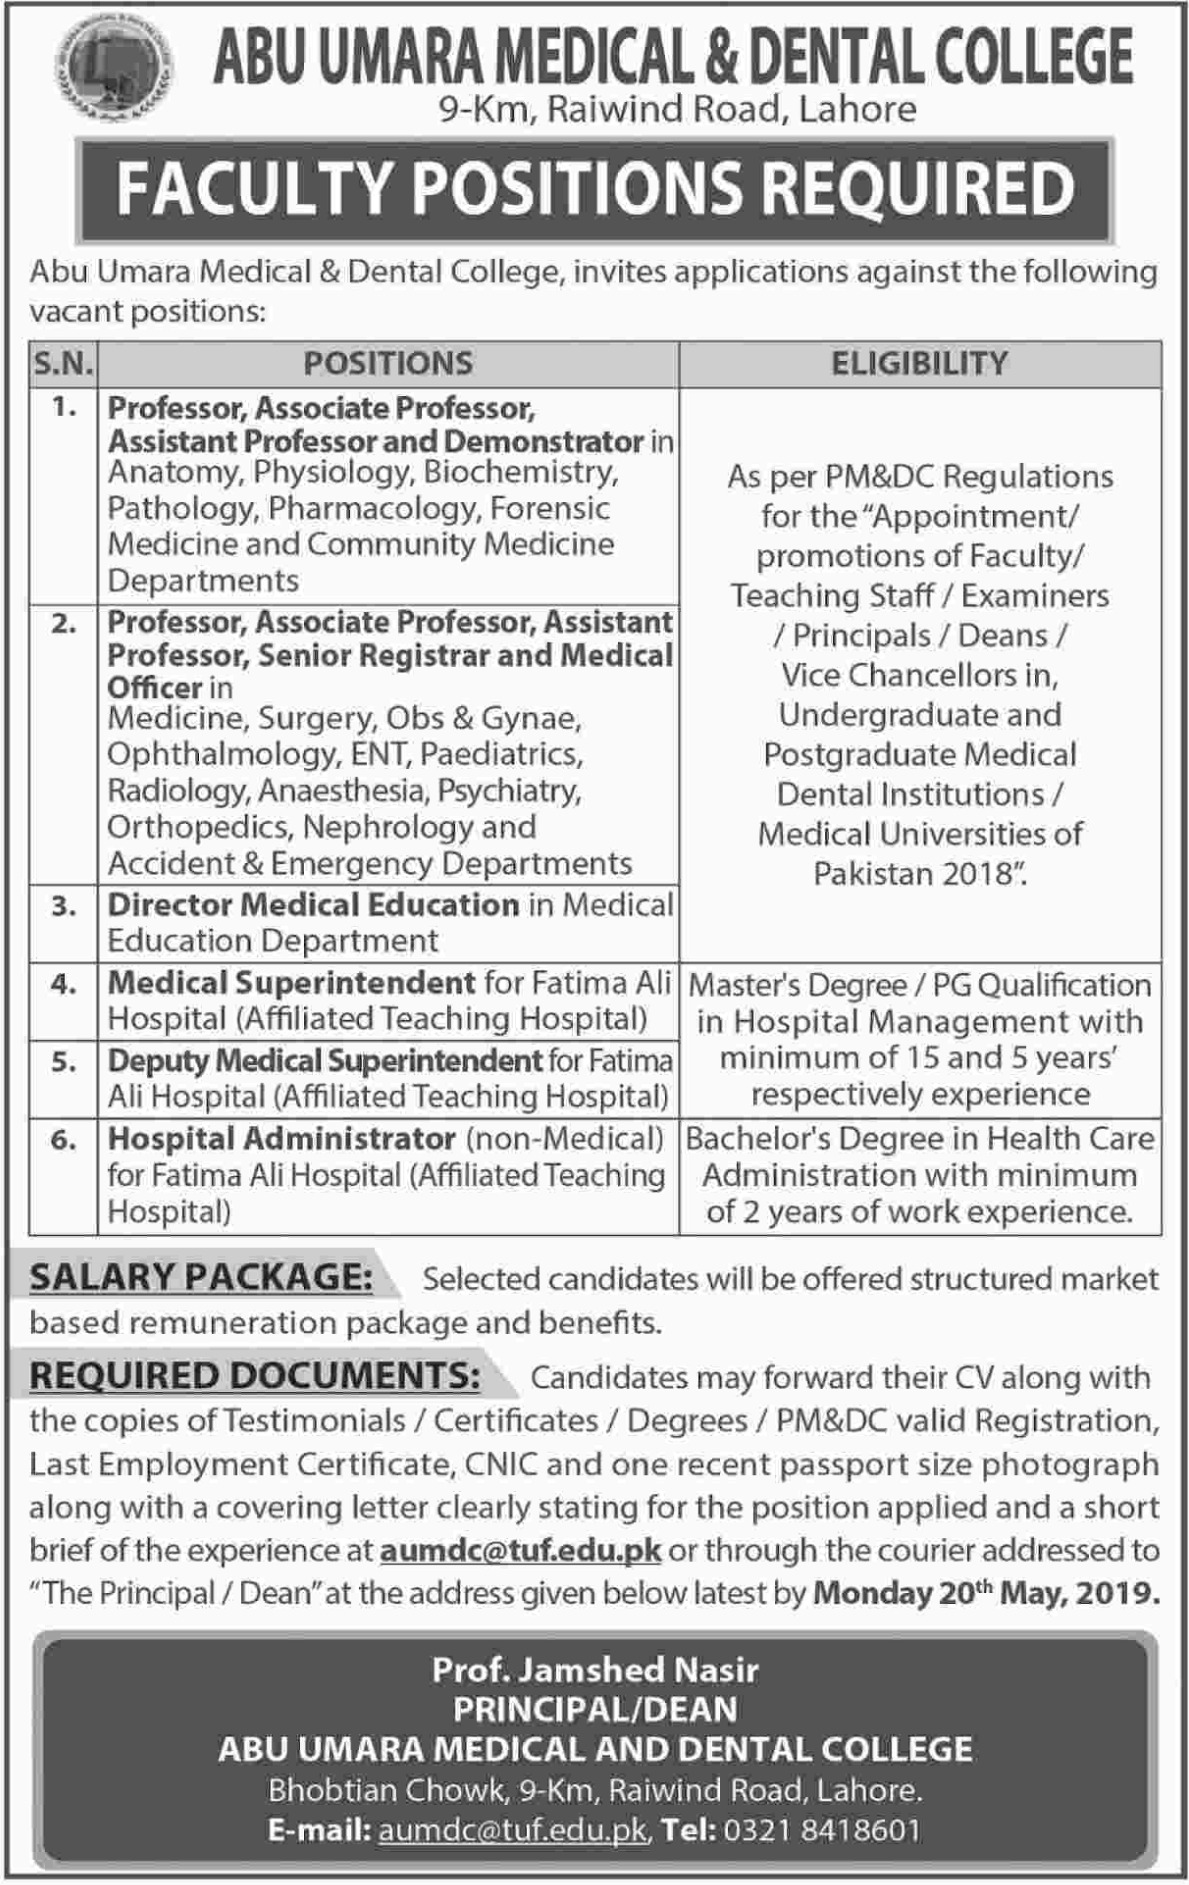 Abu Umara Medical & Dental College Lahore Jobs 2019